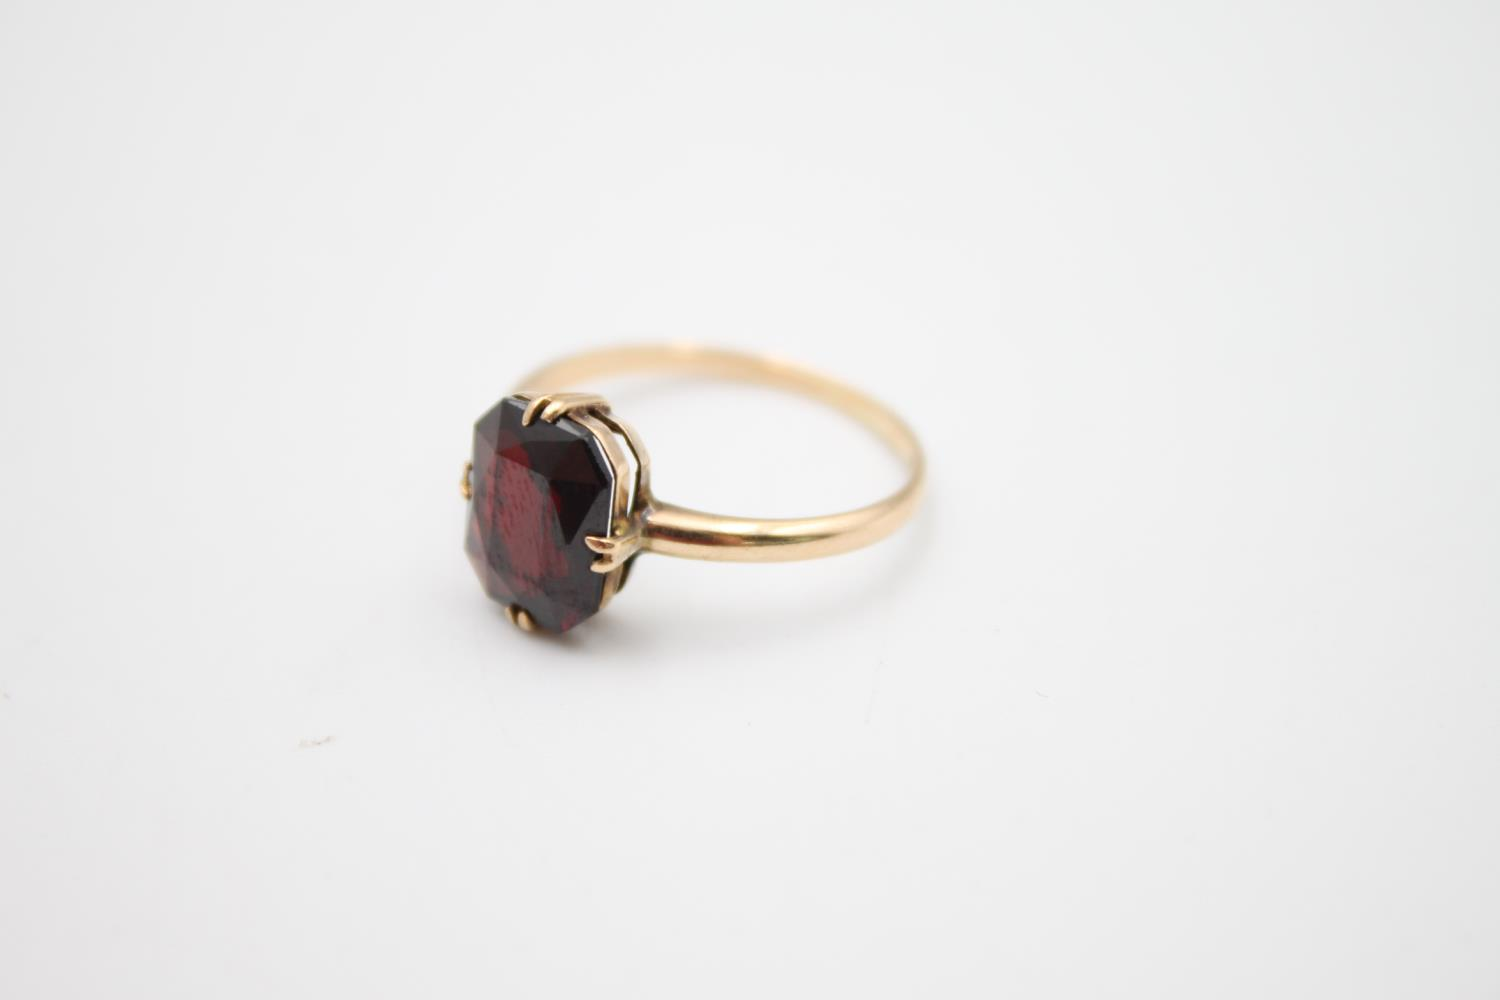 vintage 9ct gold garnet solitaire ring 2.1g Size O - Image 2 of 5